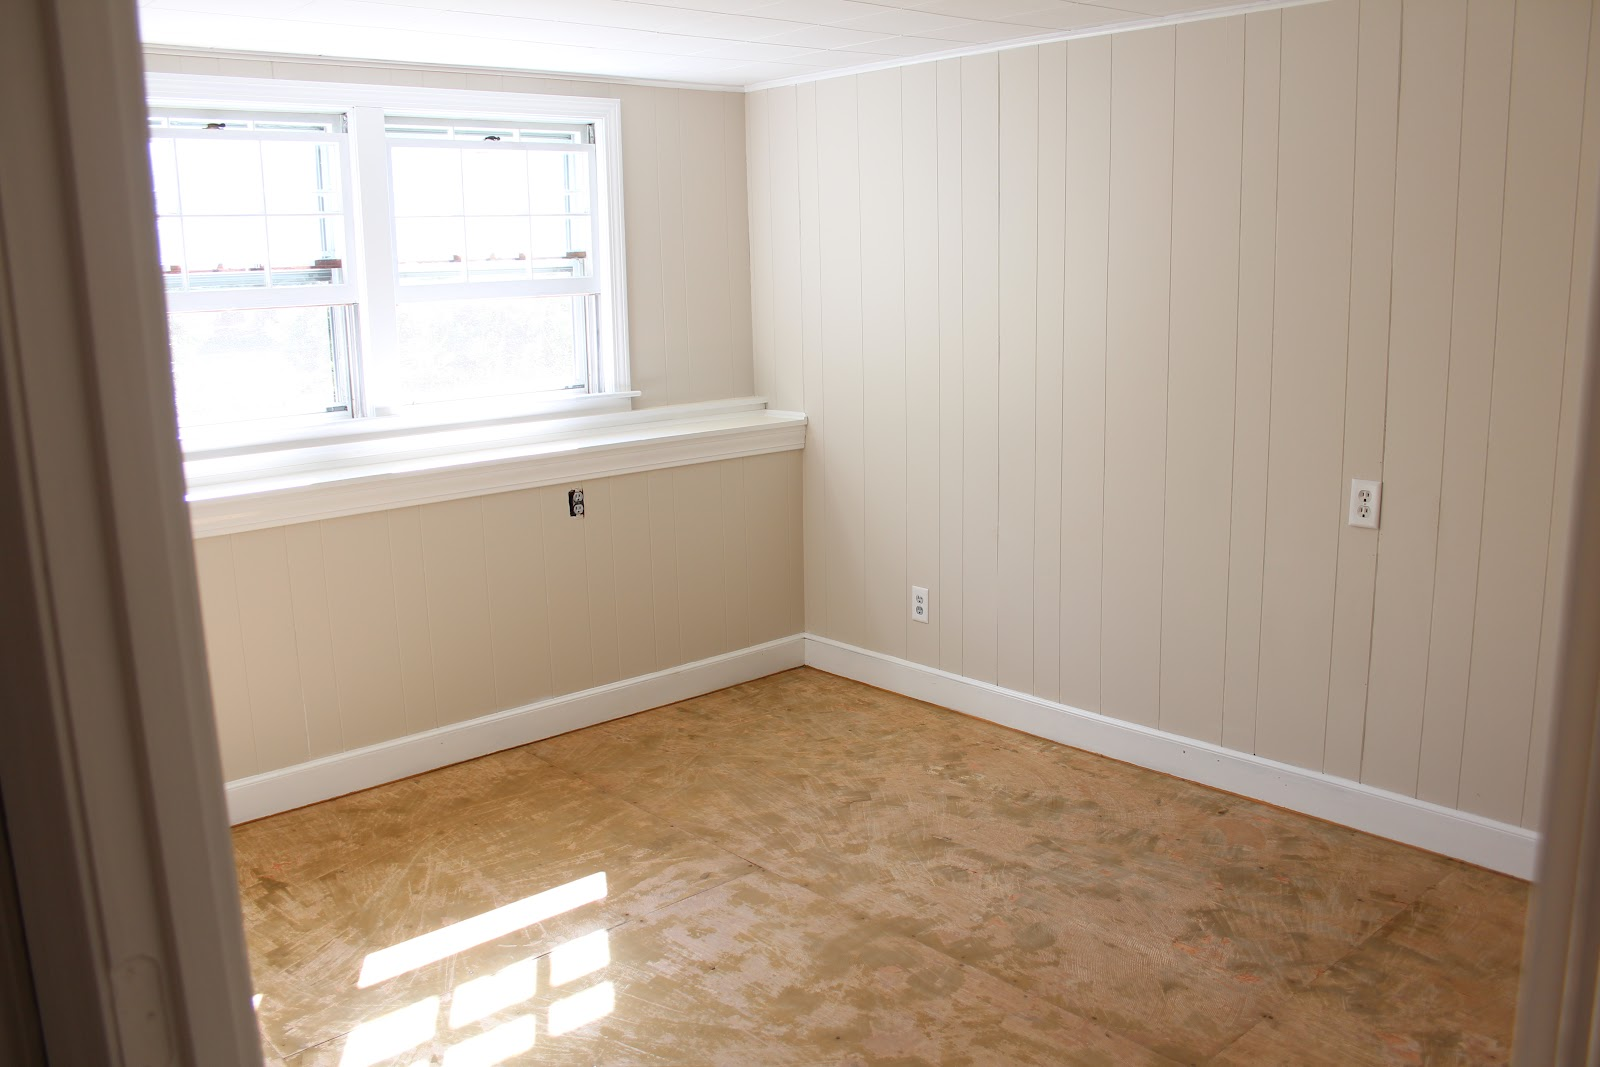 Painting over wood paneling before and after - Http 4 Bp Blogspot Com U_tszb8cpgu T3s